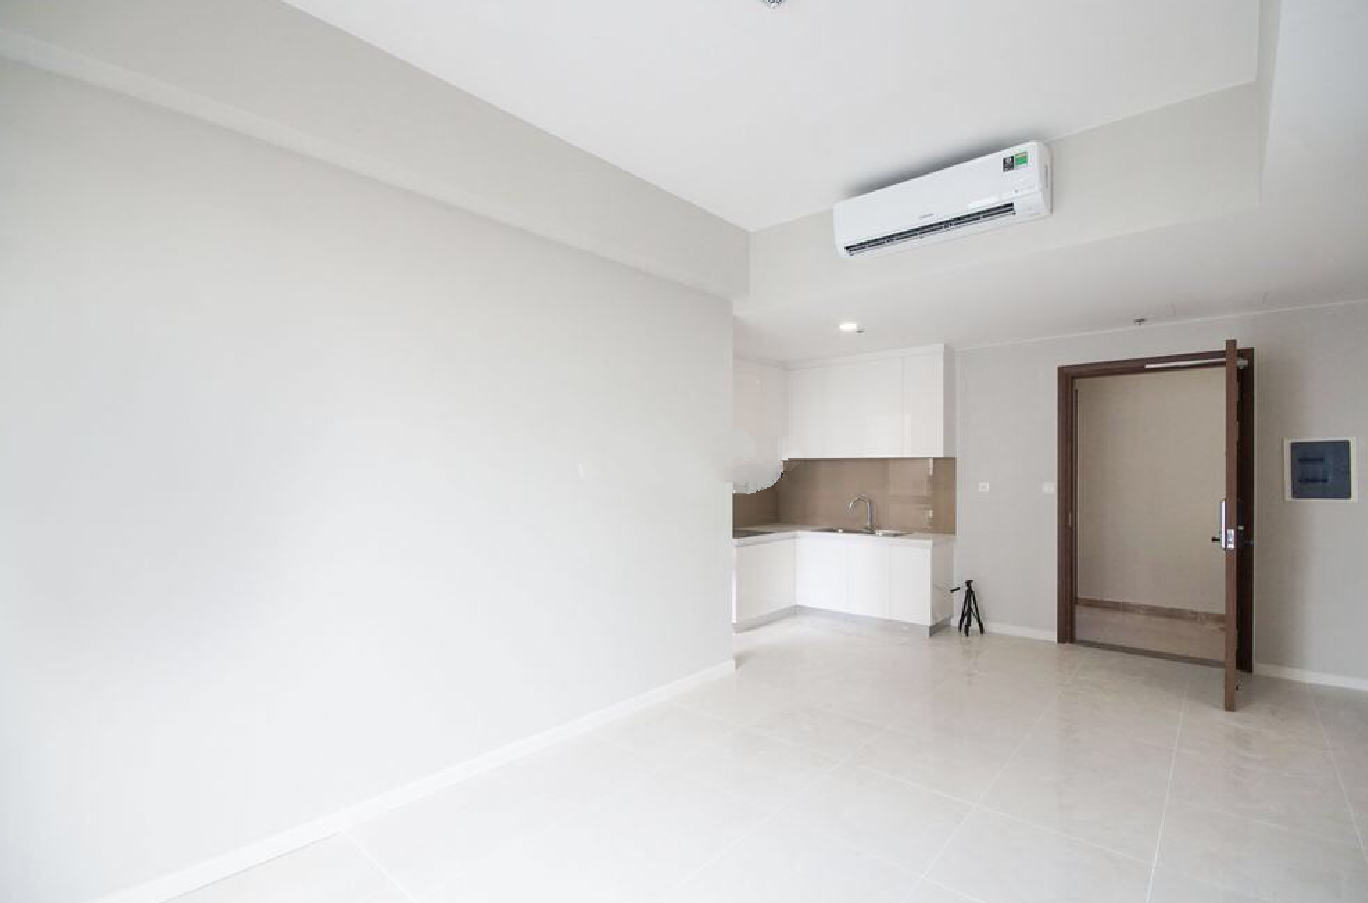 MAP90927 - Apartment for rent - Masteri An Phu - 2 bedroom